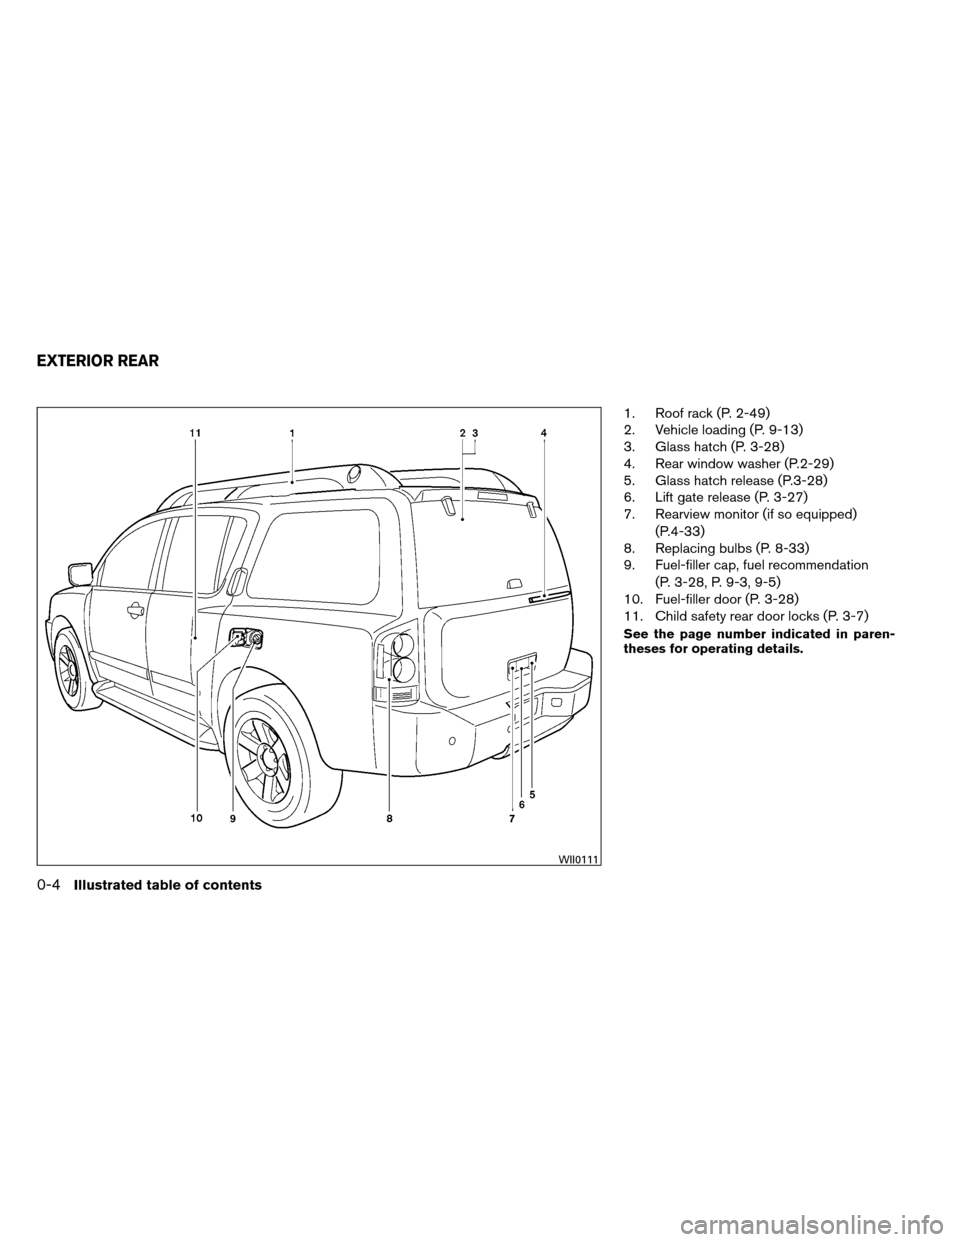 NISSAN ARMADA 2013 1.G Owners Manual 1. Roof rack (P. 2-49) 2. Vehicle loading (P. 9-13) 3. Glass hatch (P. 3-28) 4. Rear window washer (P.2-29) 5. Glass hatch release (P.3-28) 6. Lift gate release (P. 3-27) 7. Rearview monitor (if so eq